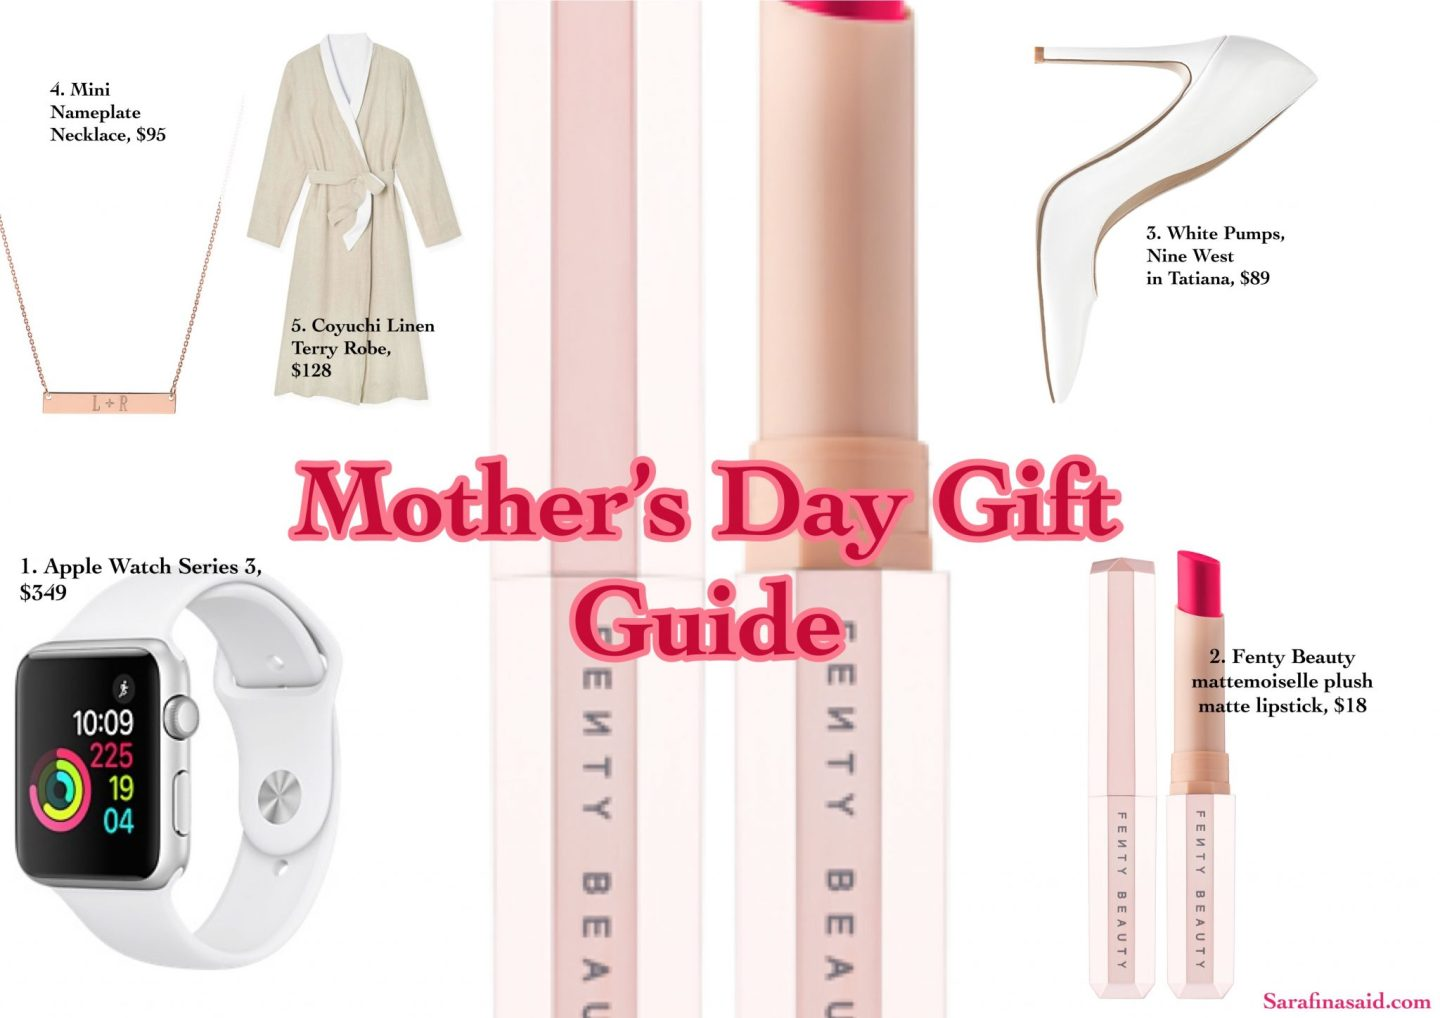 Mother's Day Gift Guide for Millennials!